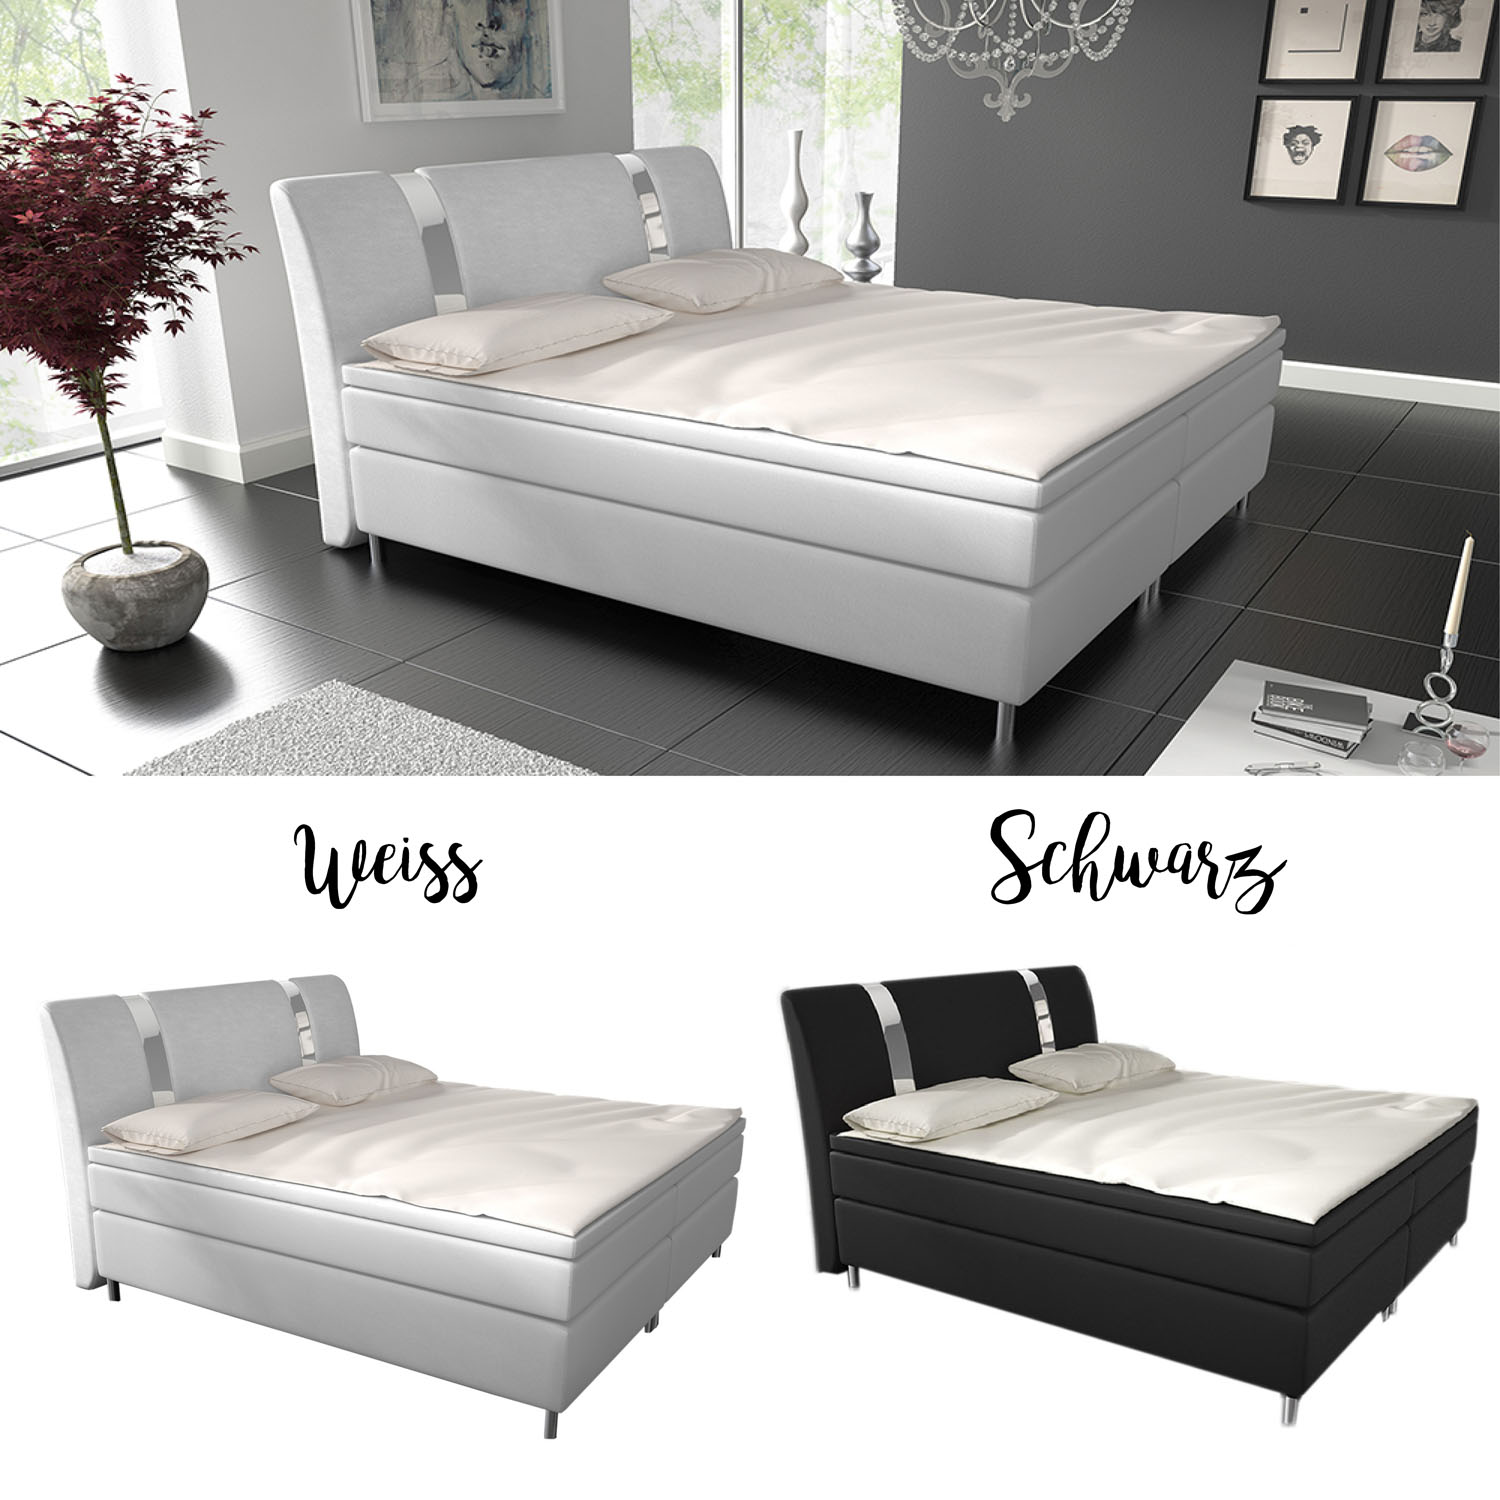 boxspringbett hotelbett led designerbett doppelbett ehebett topper federkern neu ebay. Black Bedroom Furniture Sets. Home Design Ideas